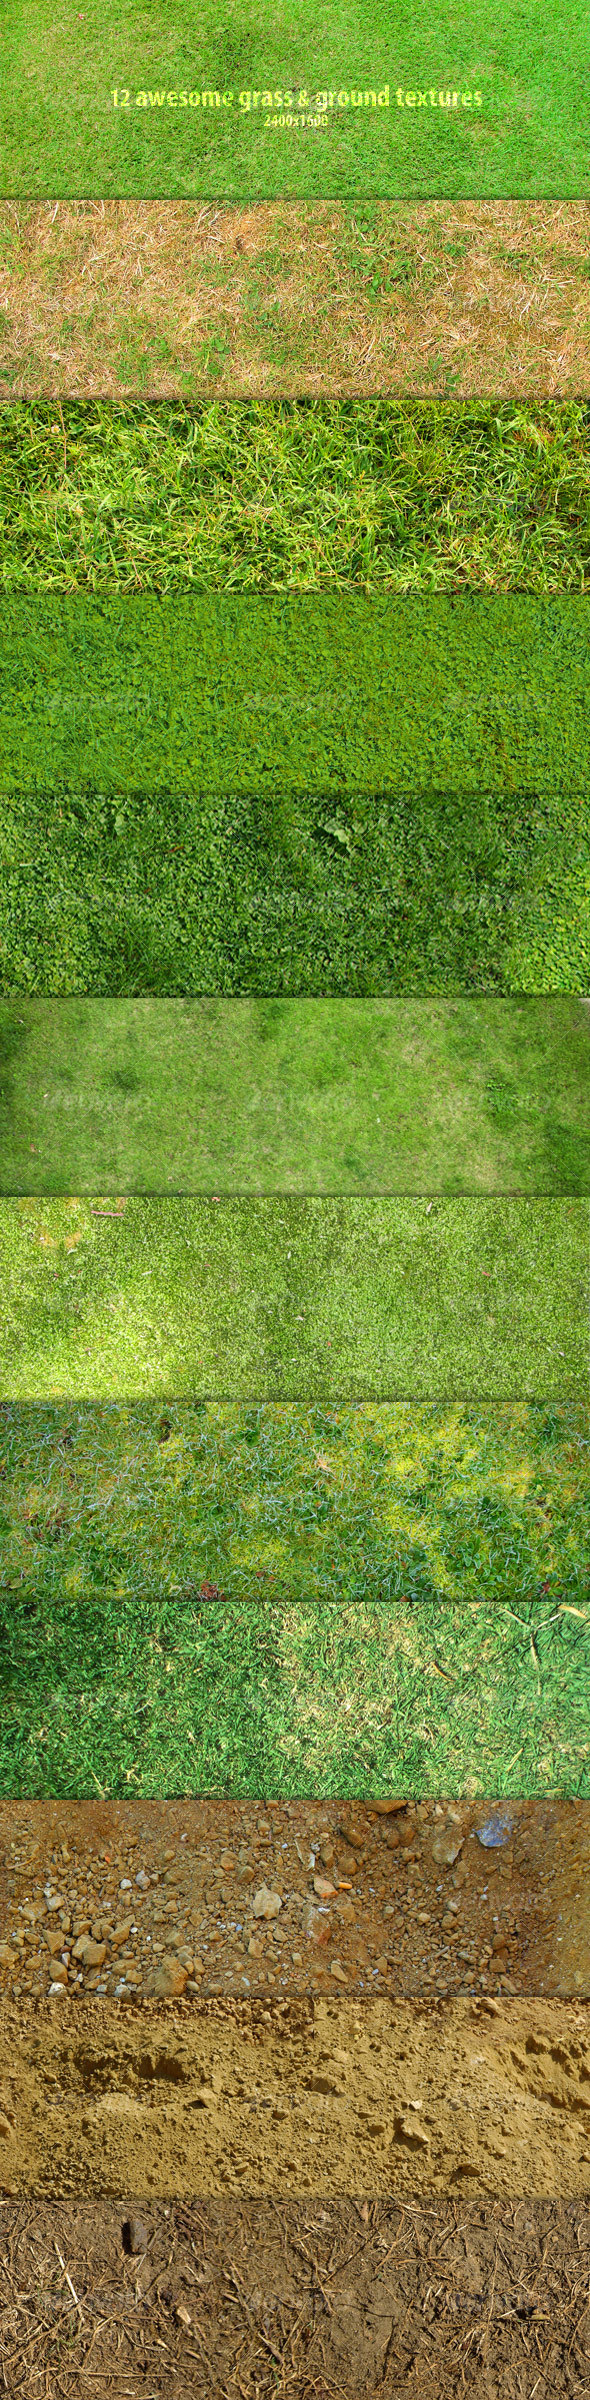 12 Grass & Ground Textures - Nature Textures